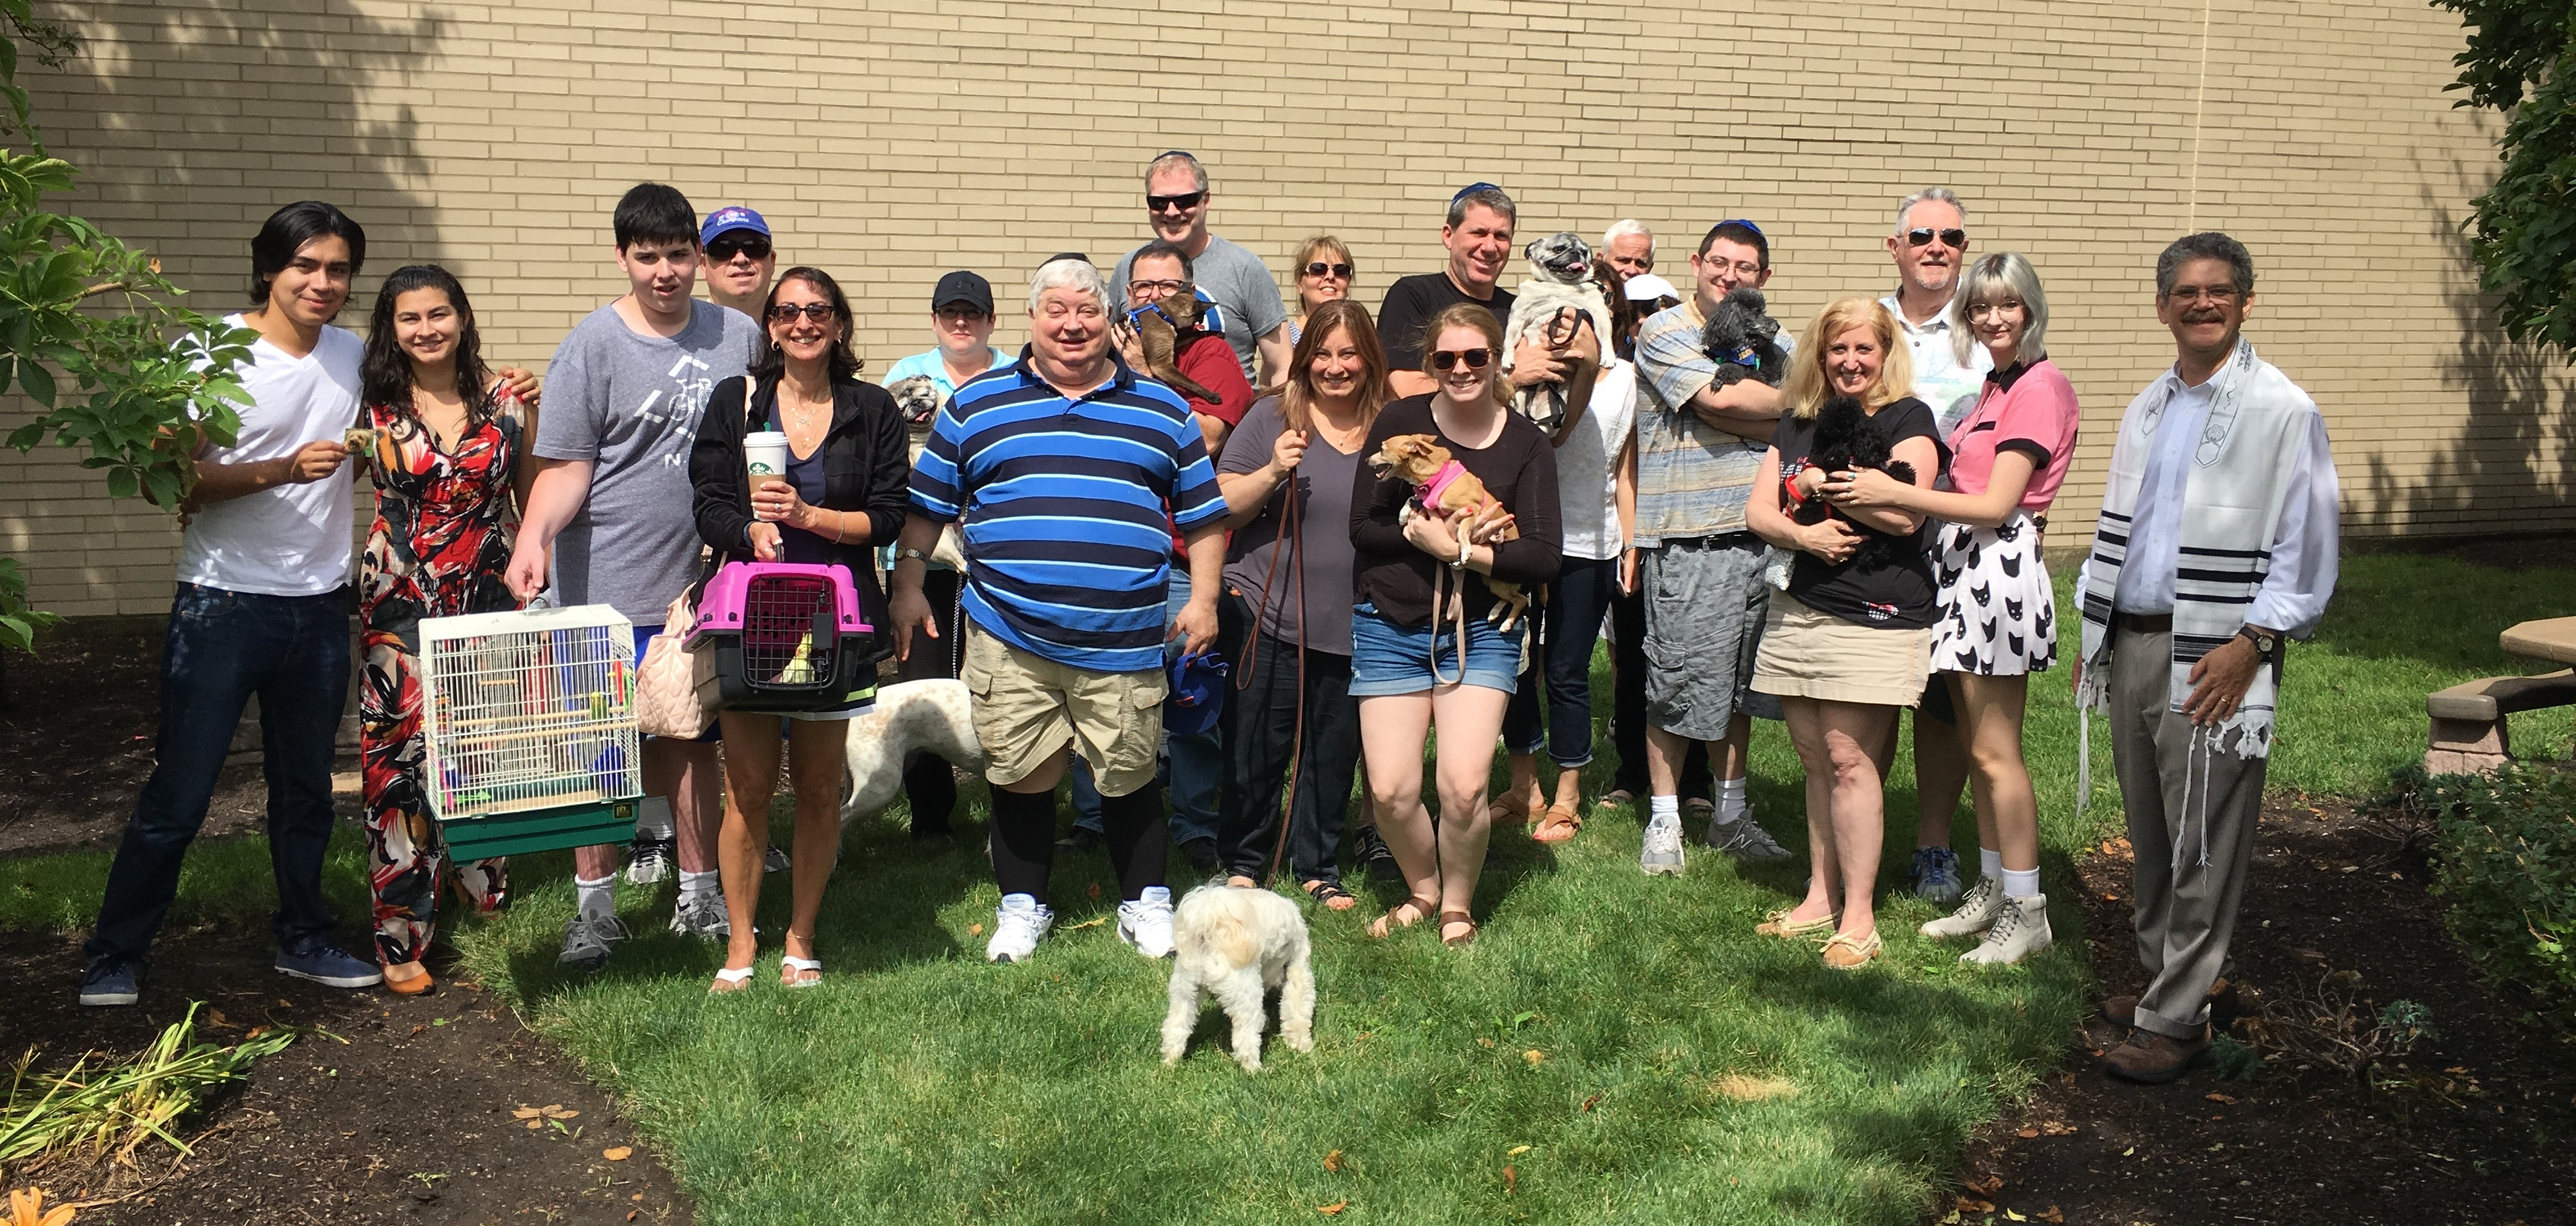 Group Photo from Noah's Bark 7-22-17